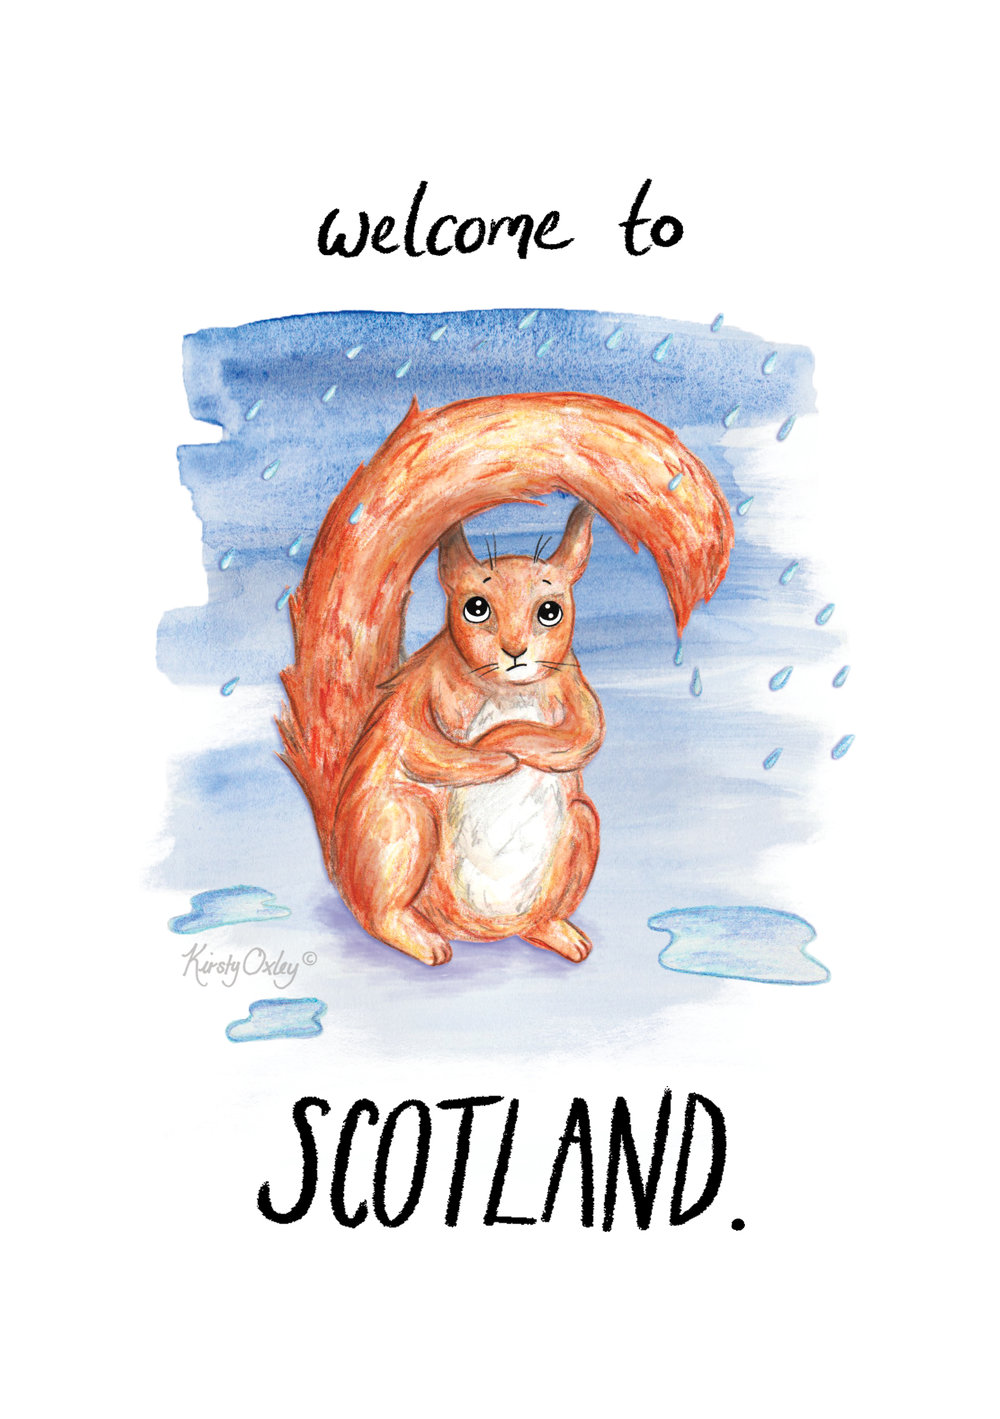 Kirsty Oxley, Welcome To Scotland, drawing.jpg